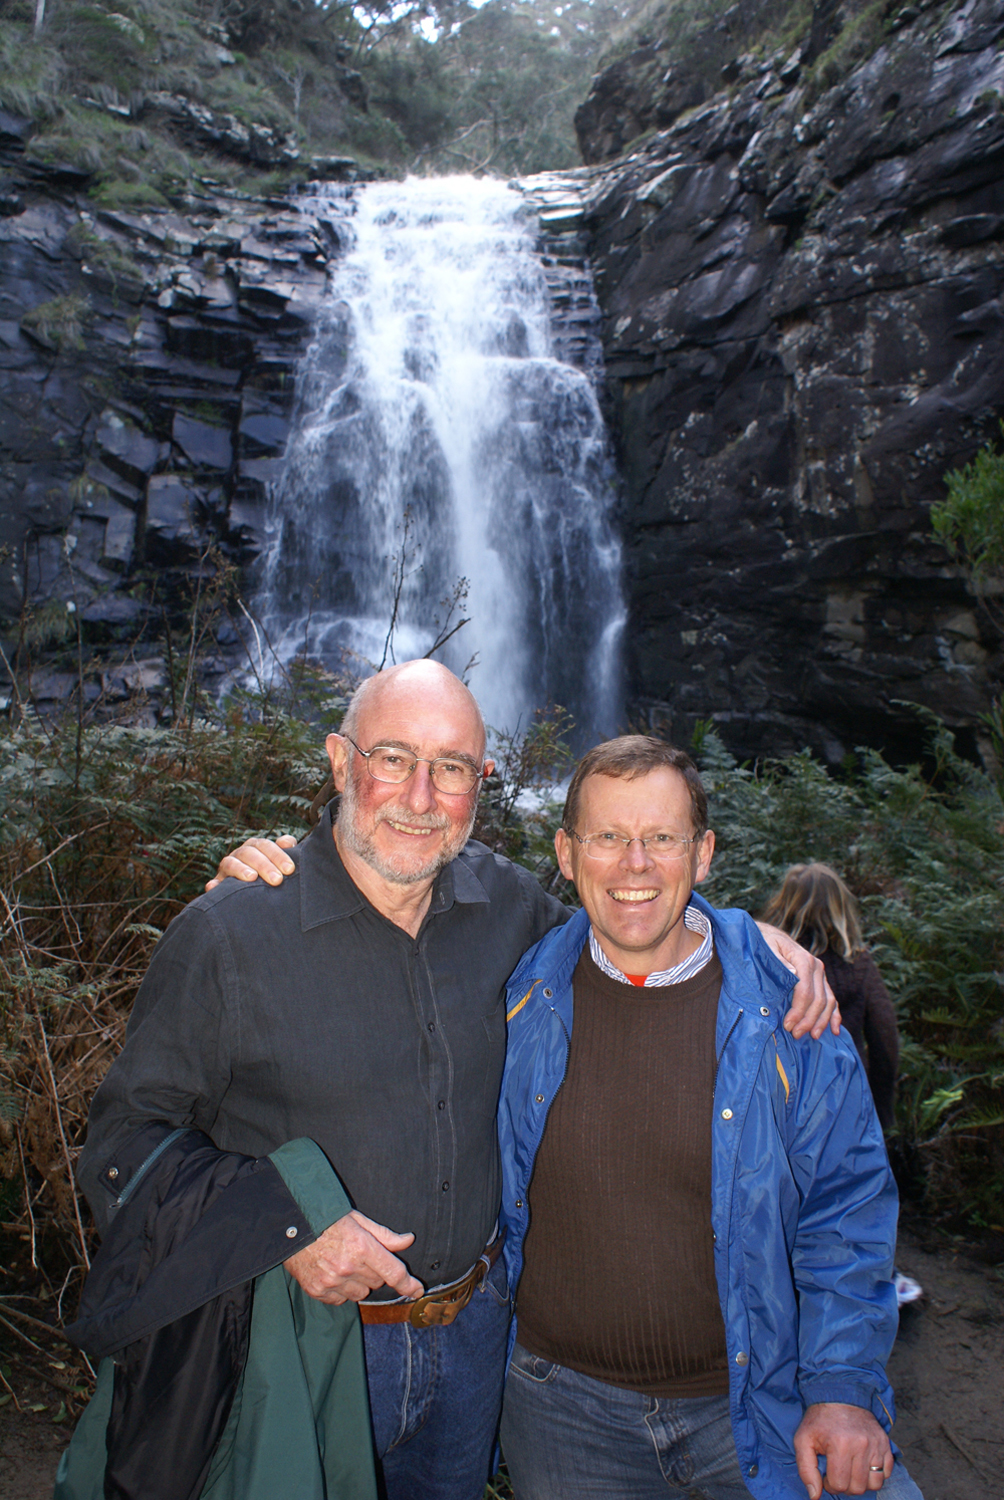 Dexter and Rob Shepherd at Sheoak Falls